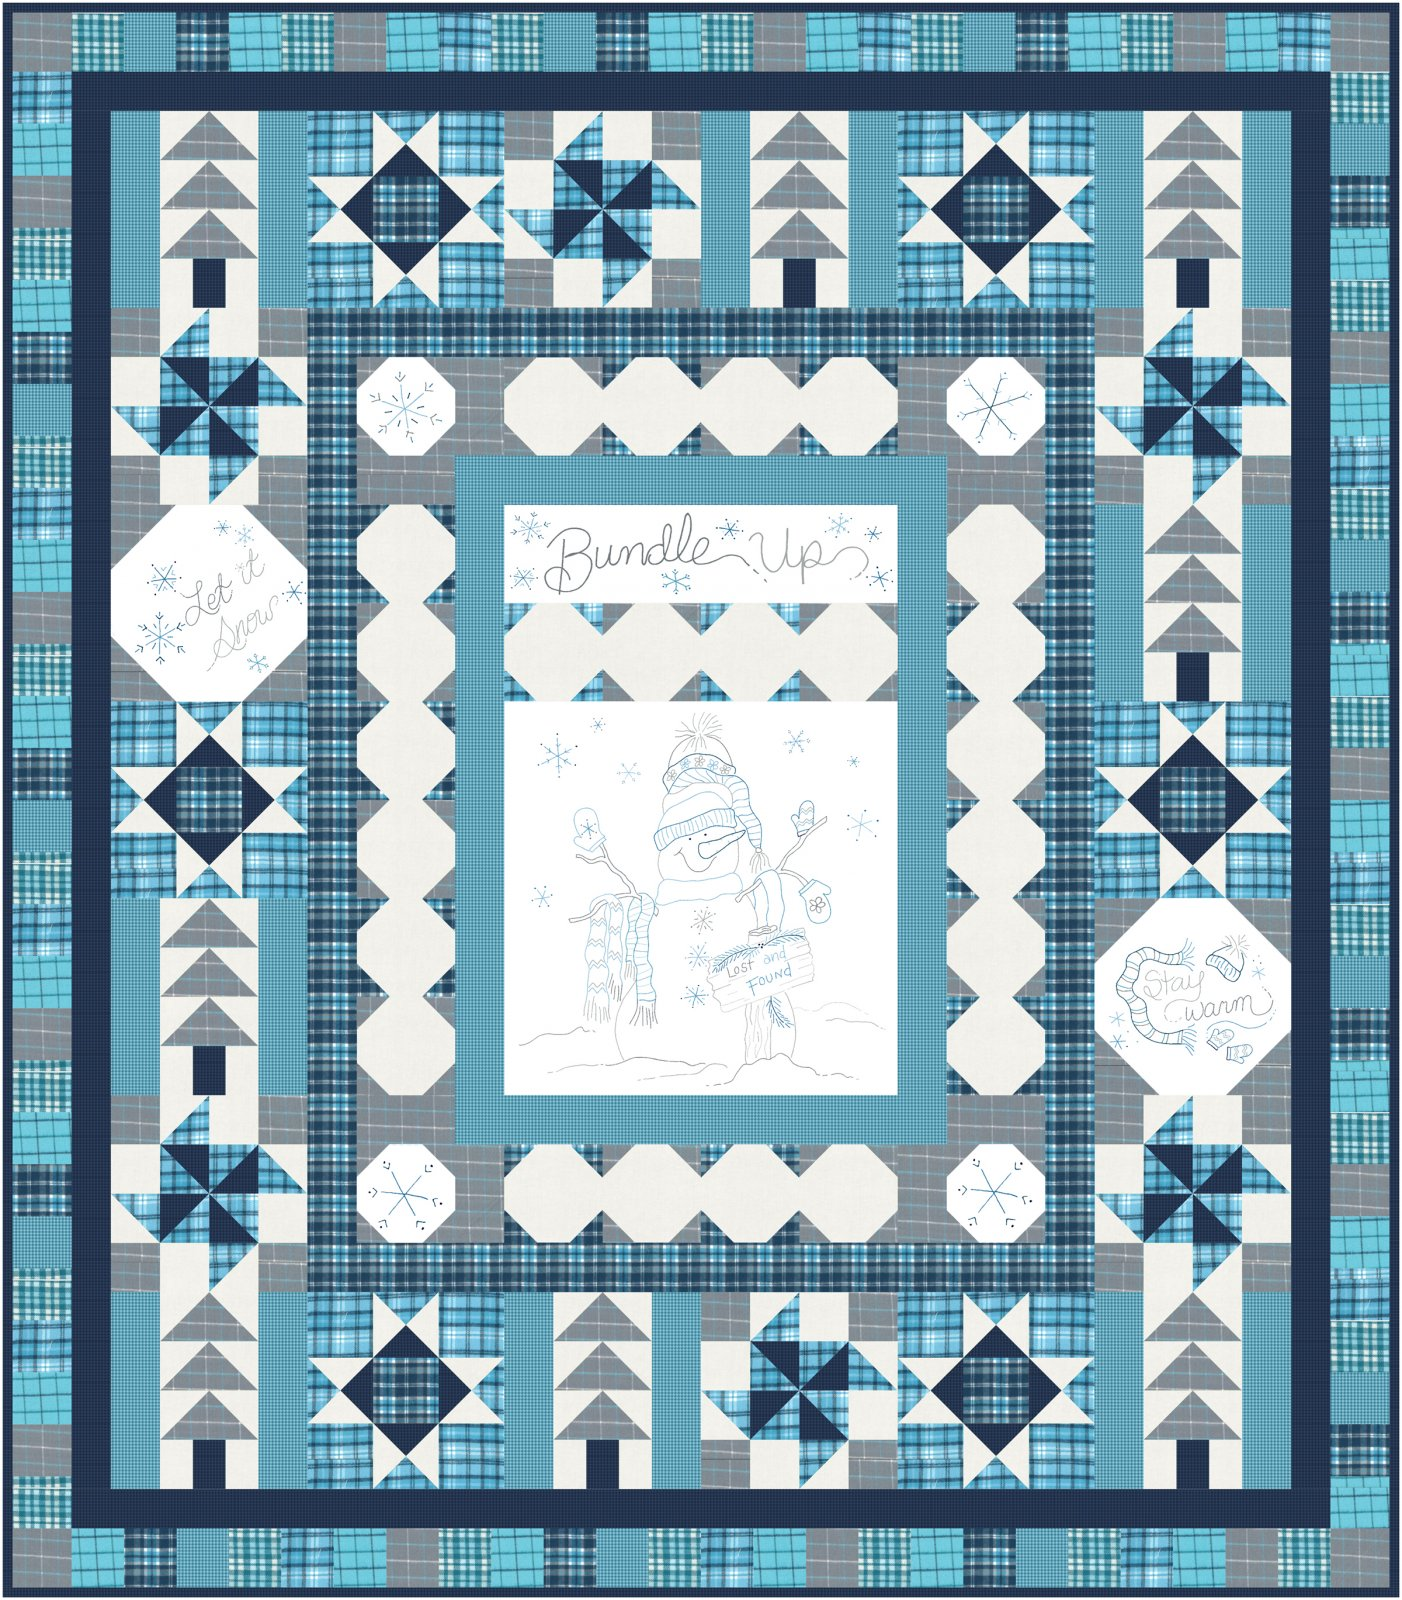 Bundle Up Block of the Month by Cindy Staub